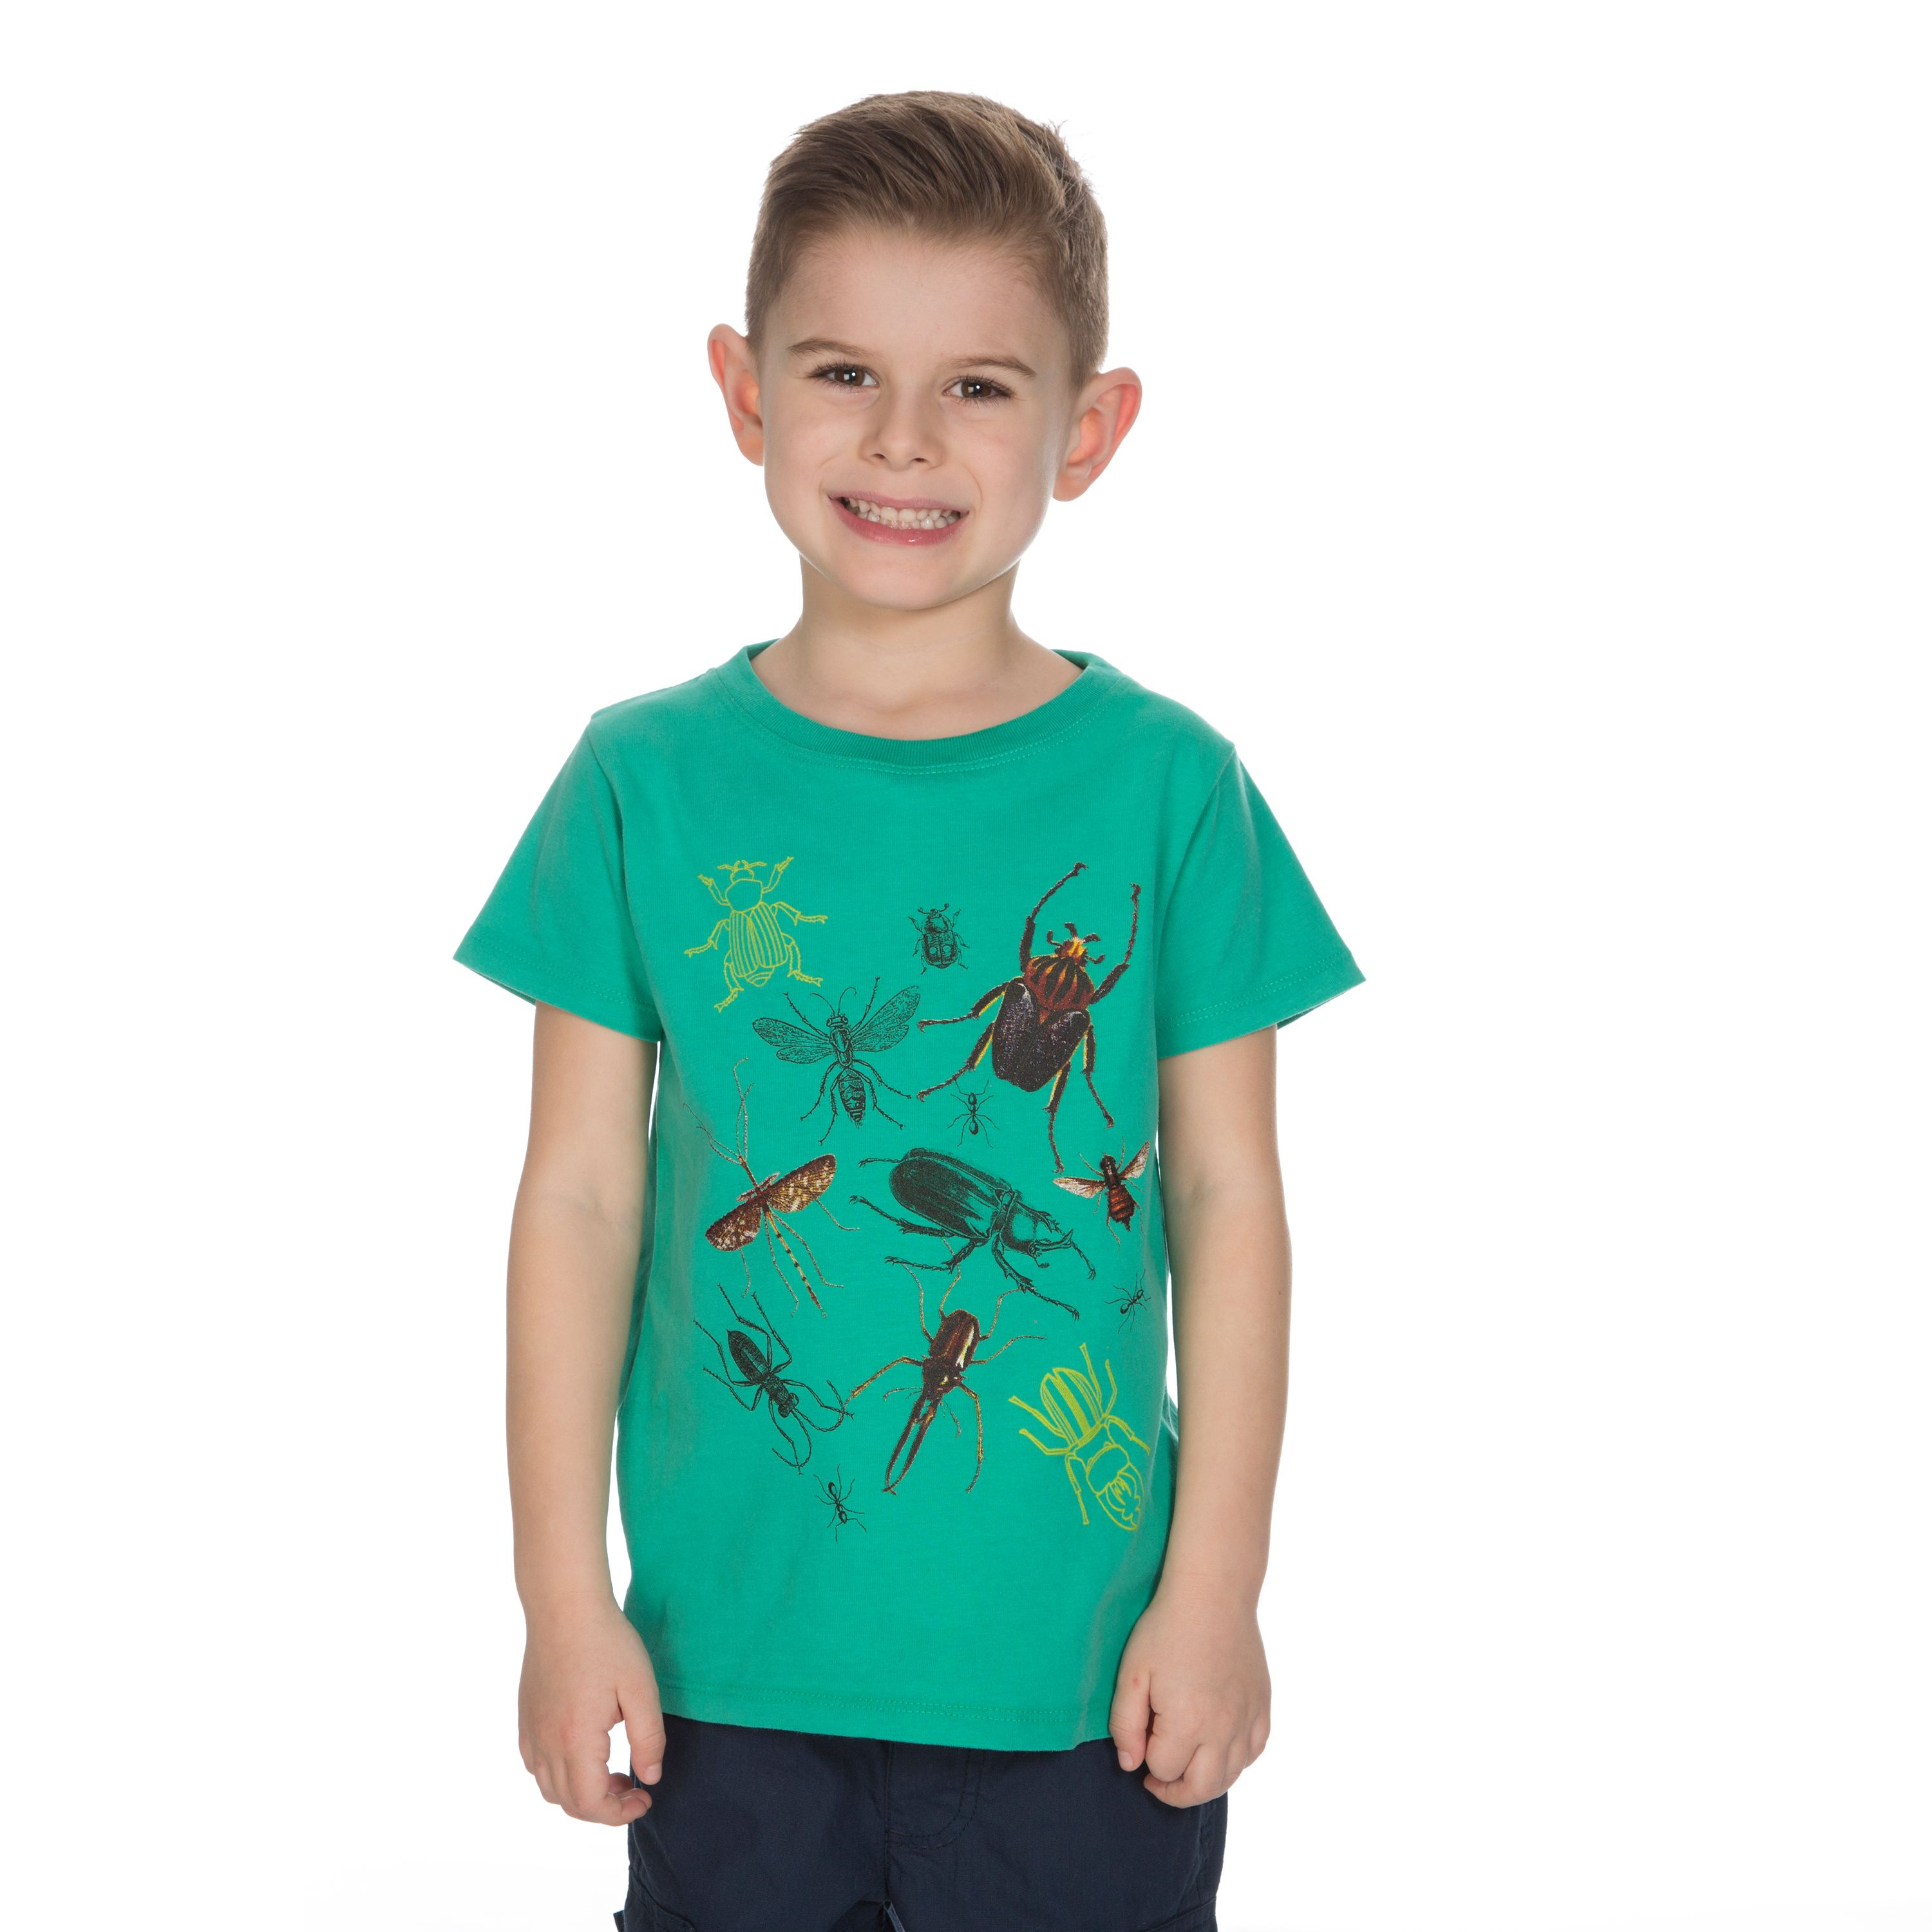 PETER STORM Boys' Insects T-Shirt